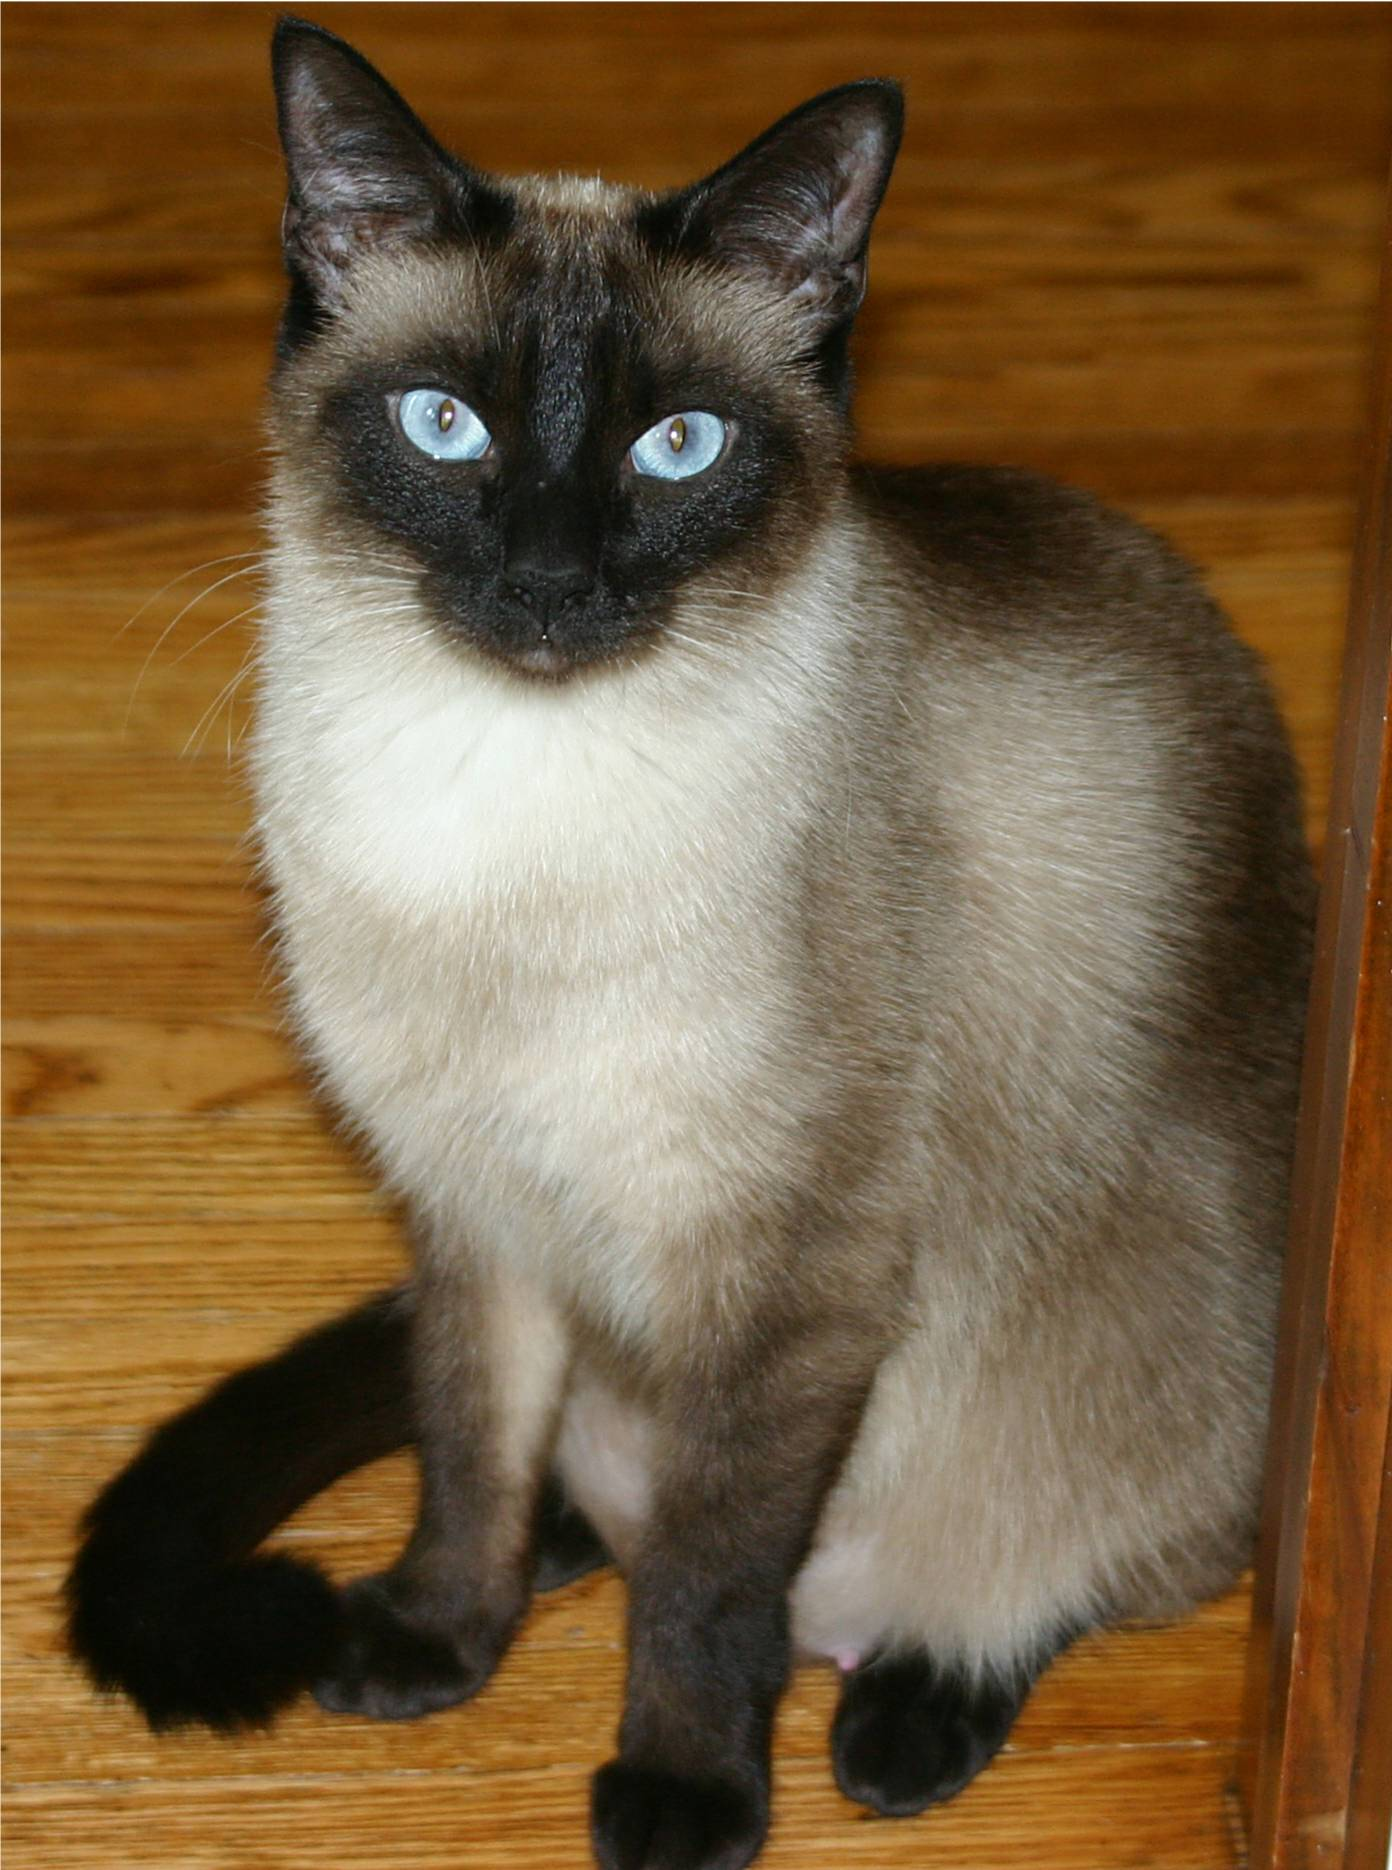 File:Niobe050905-Siamese Cat.jpeg - Wikimedia Commons